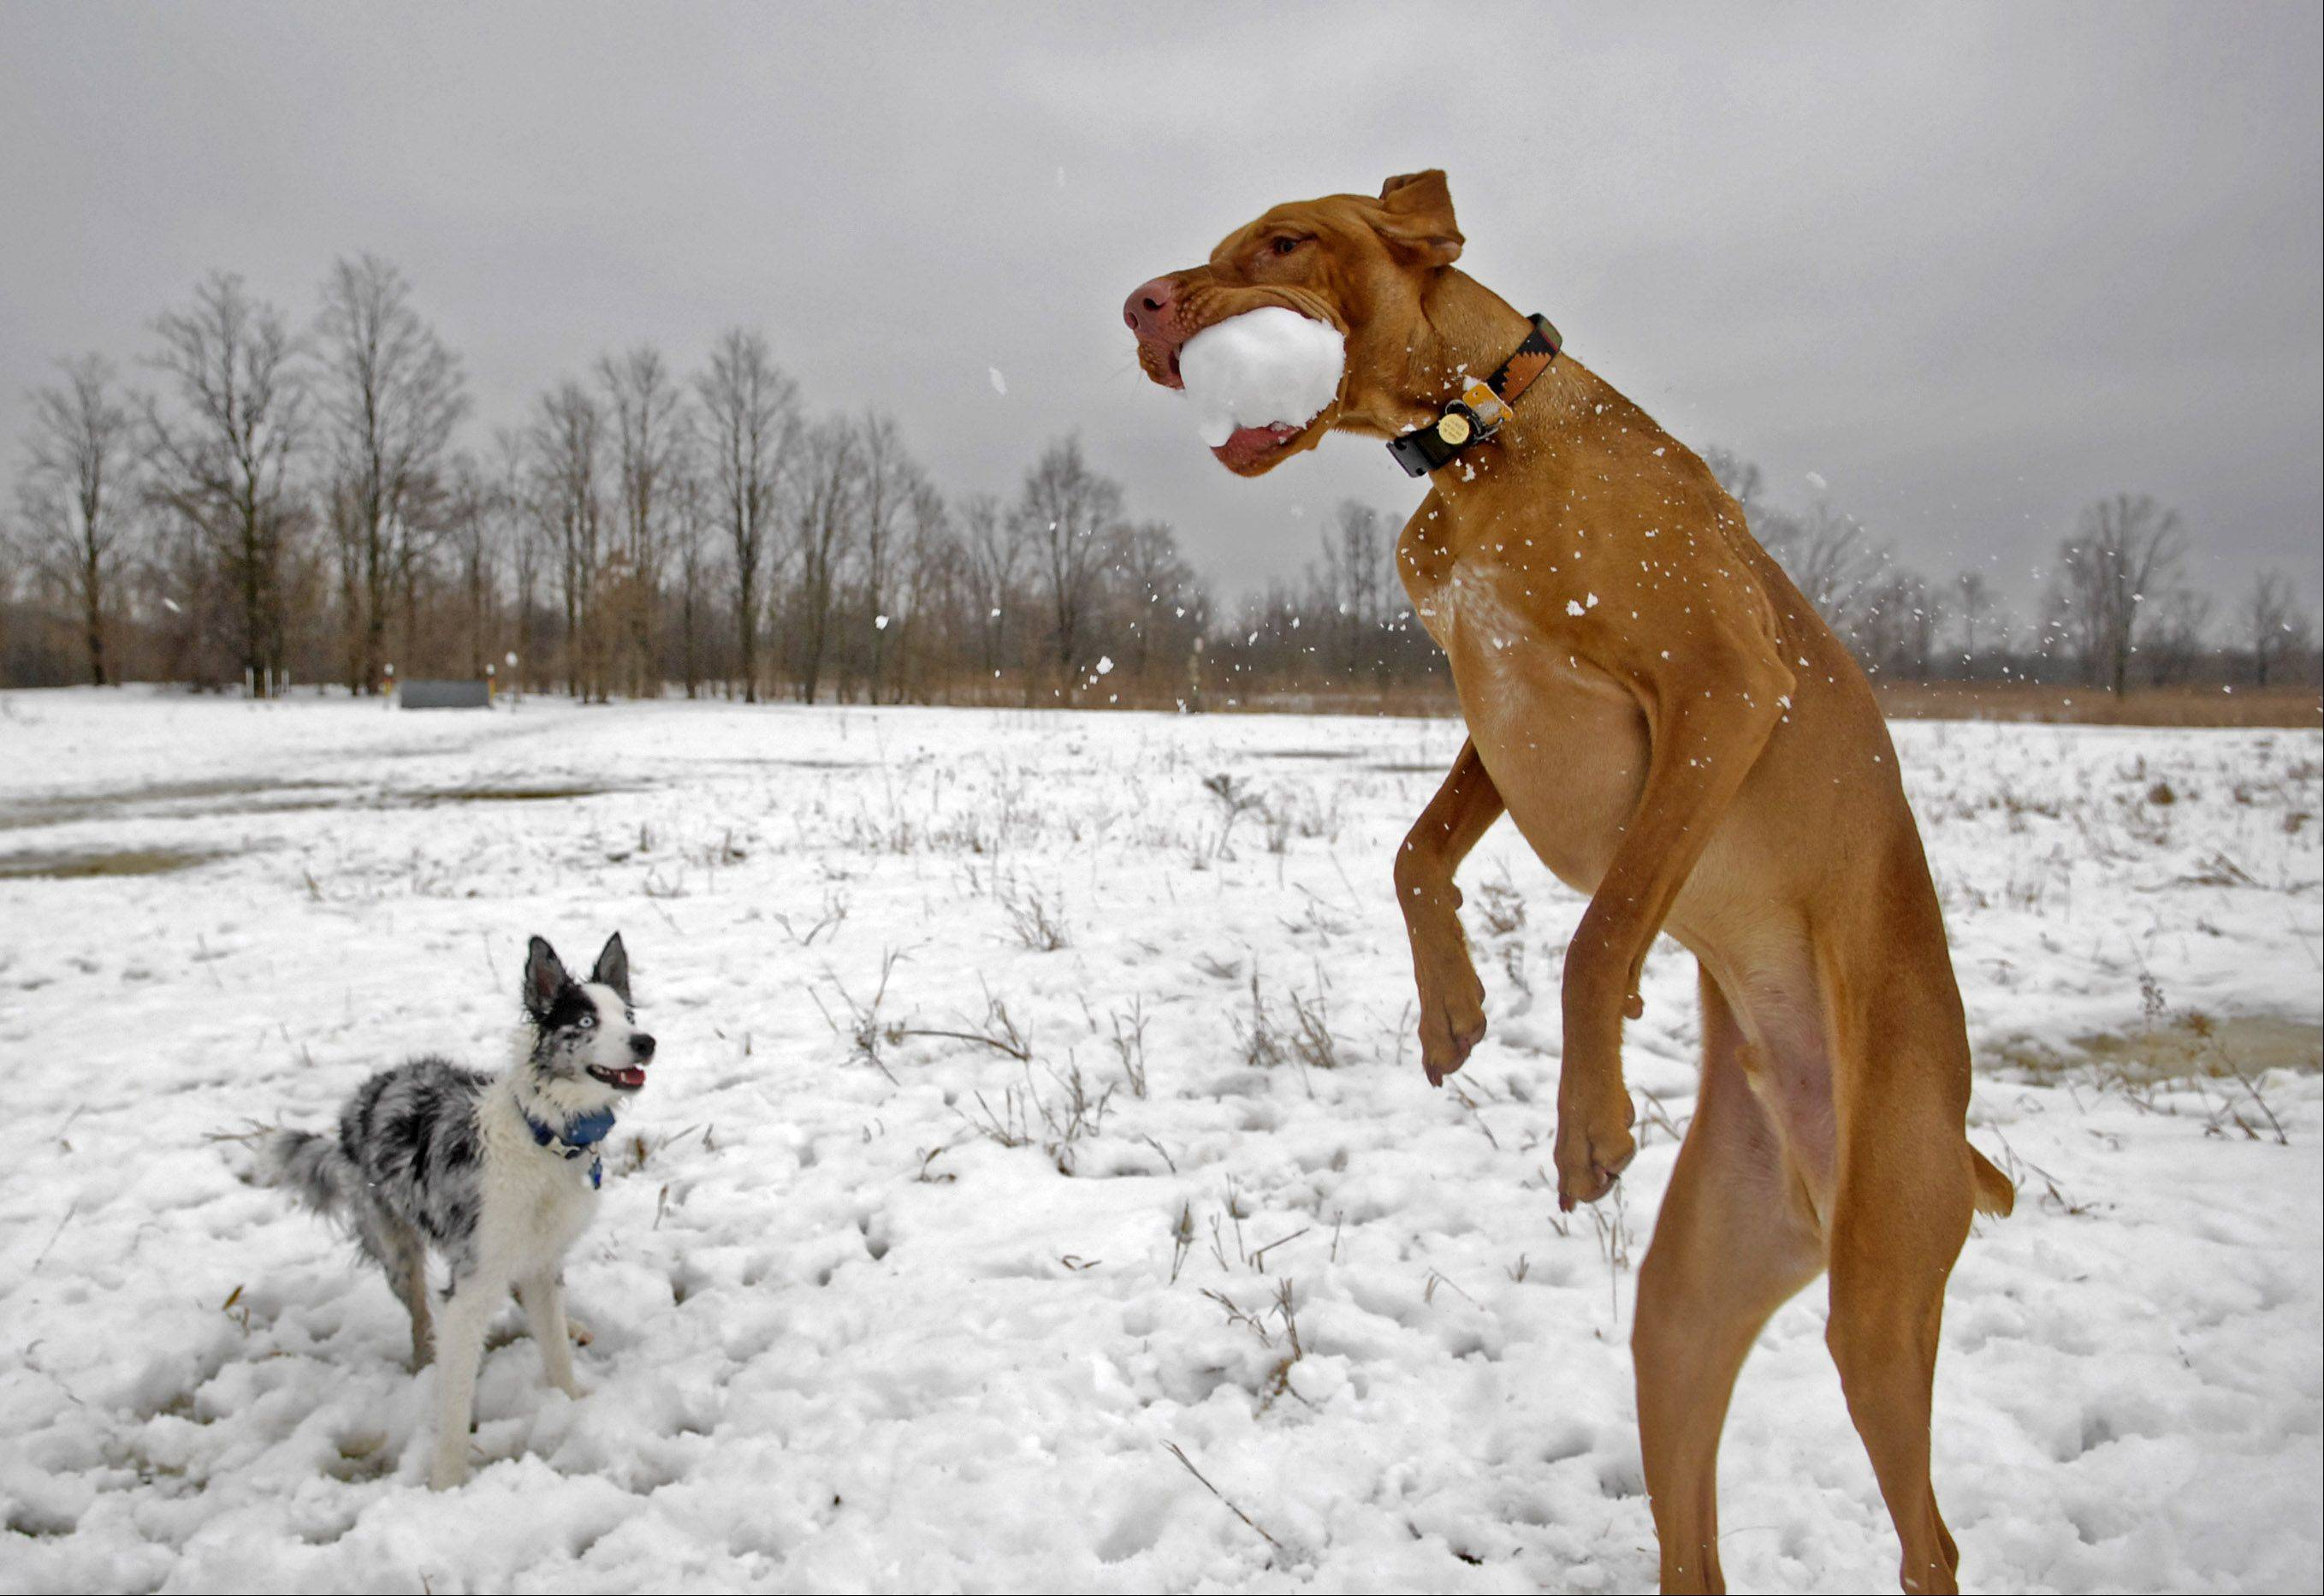 Big dogs and small dogs are separated in plans for a dog park in Melas Park in Mount Prospect.